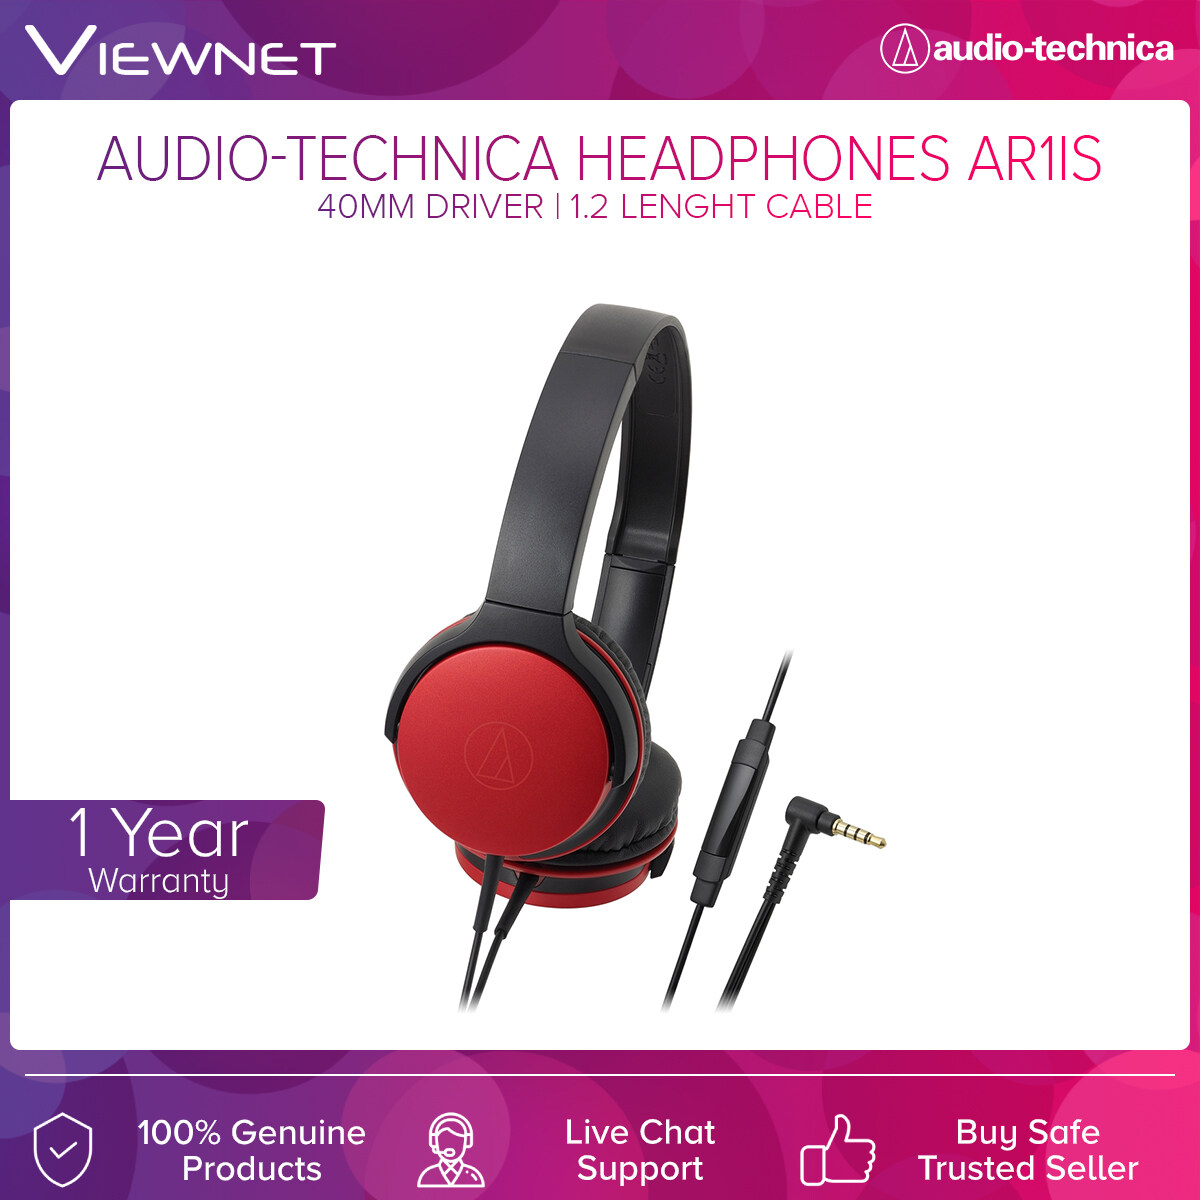 Audio-Technica Headphones ATH-AR1IS with 40mm Driver, 5 - 30,000 Hz Frequency, 1.2m Length Cable, Gold-Plated 3.5mm Audio Jack, Built-In Microphone